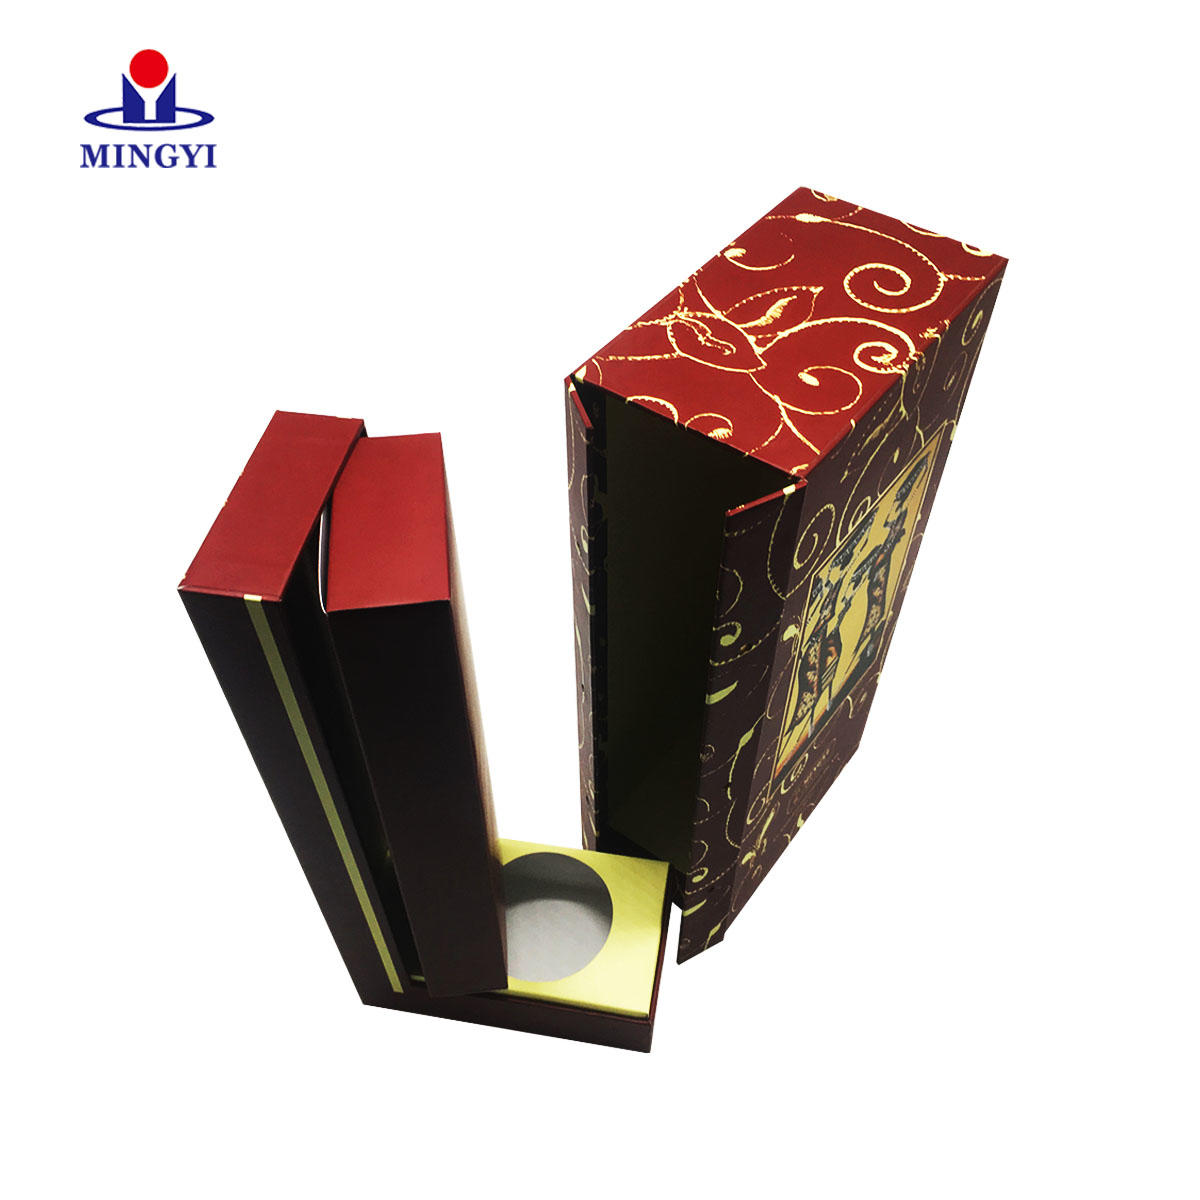 Mingyi Printing New custom gift boxes manufacturers for phone-2